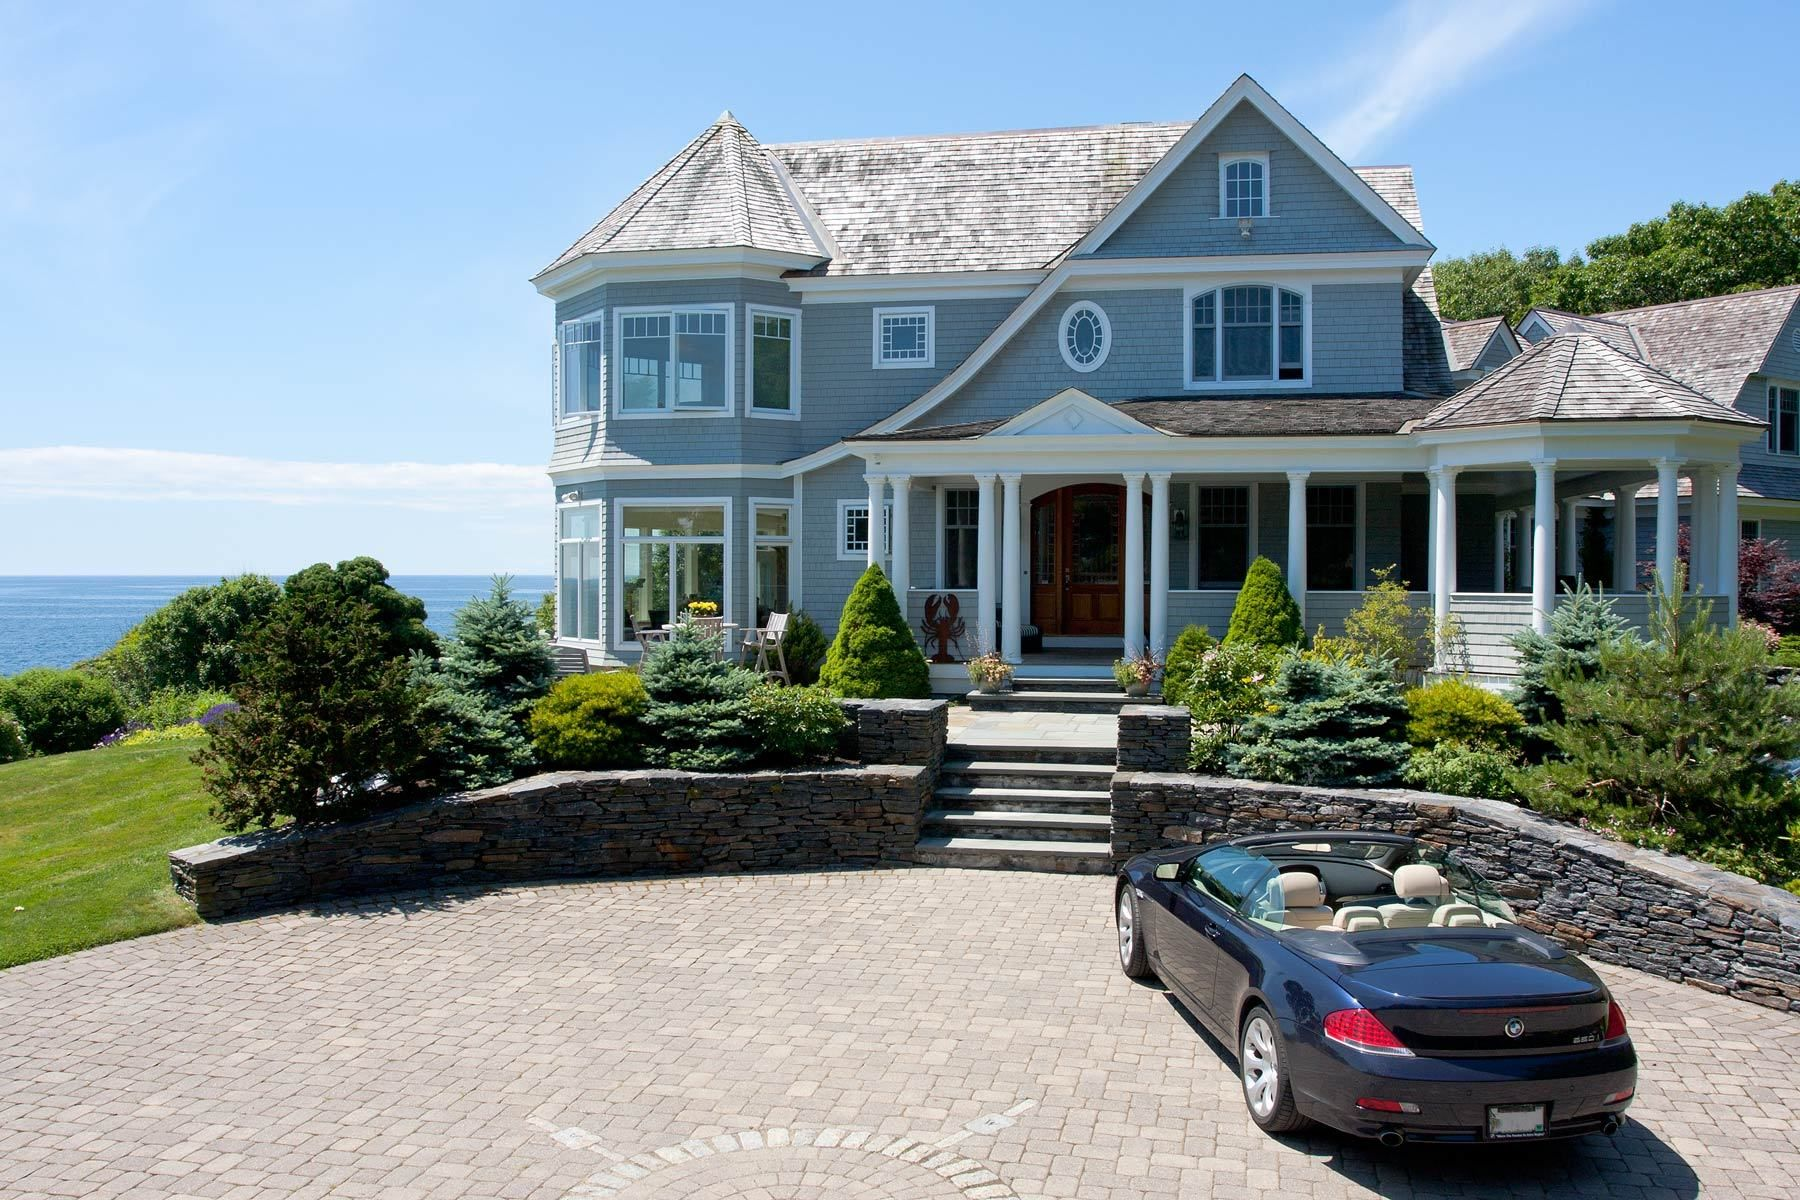 Beautiful coastal home in maine house ideas pinterest for Coastal homes